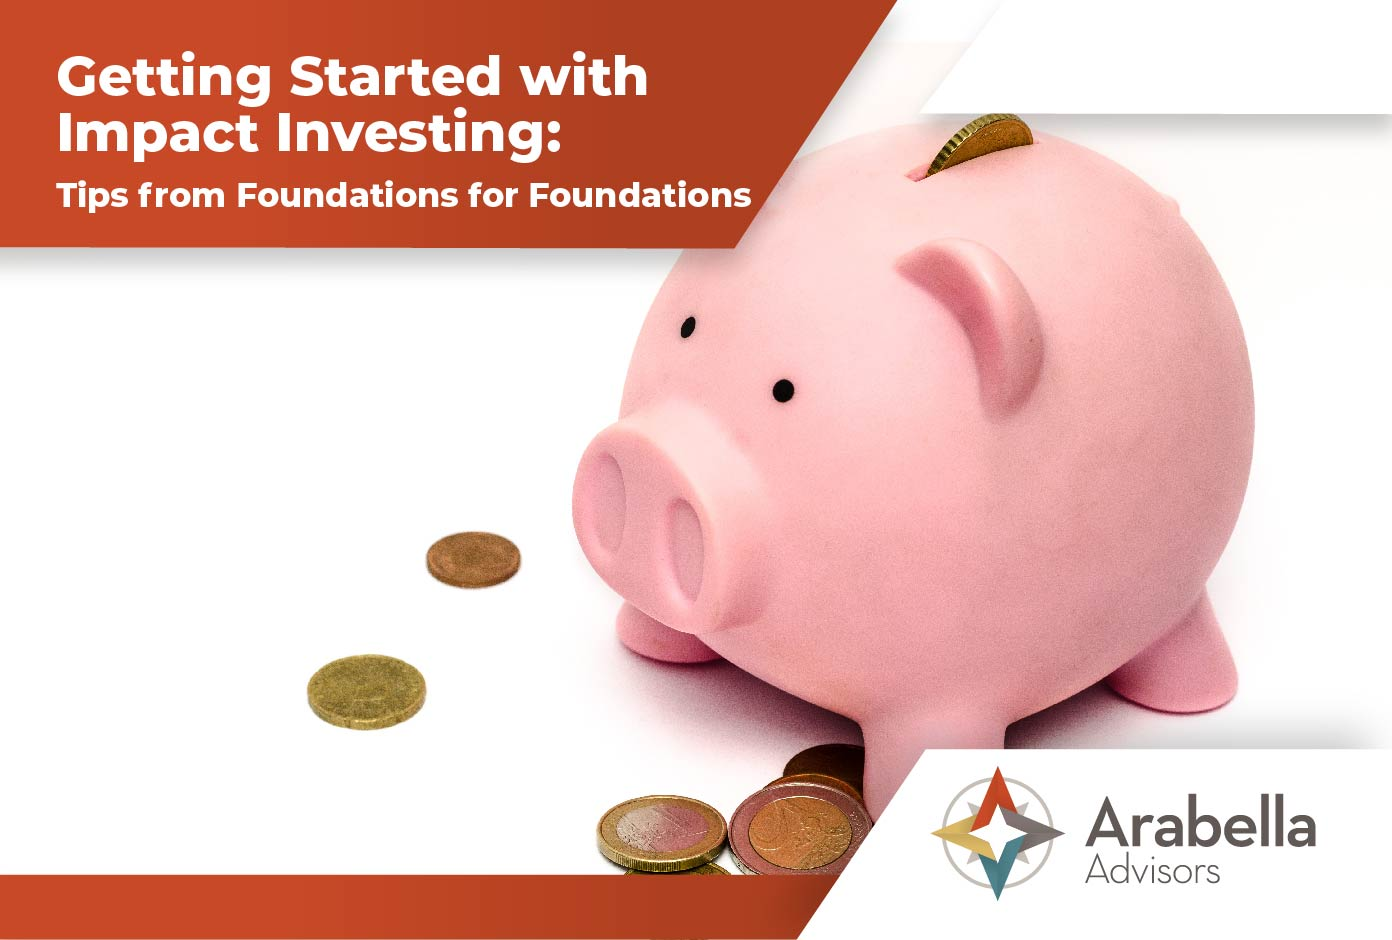 Getting Started with Impact Investing: Tips from Foundations for Foundations